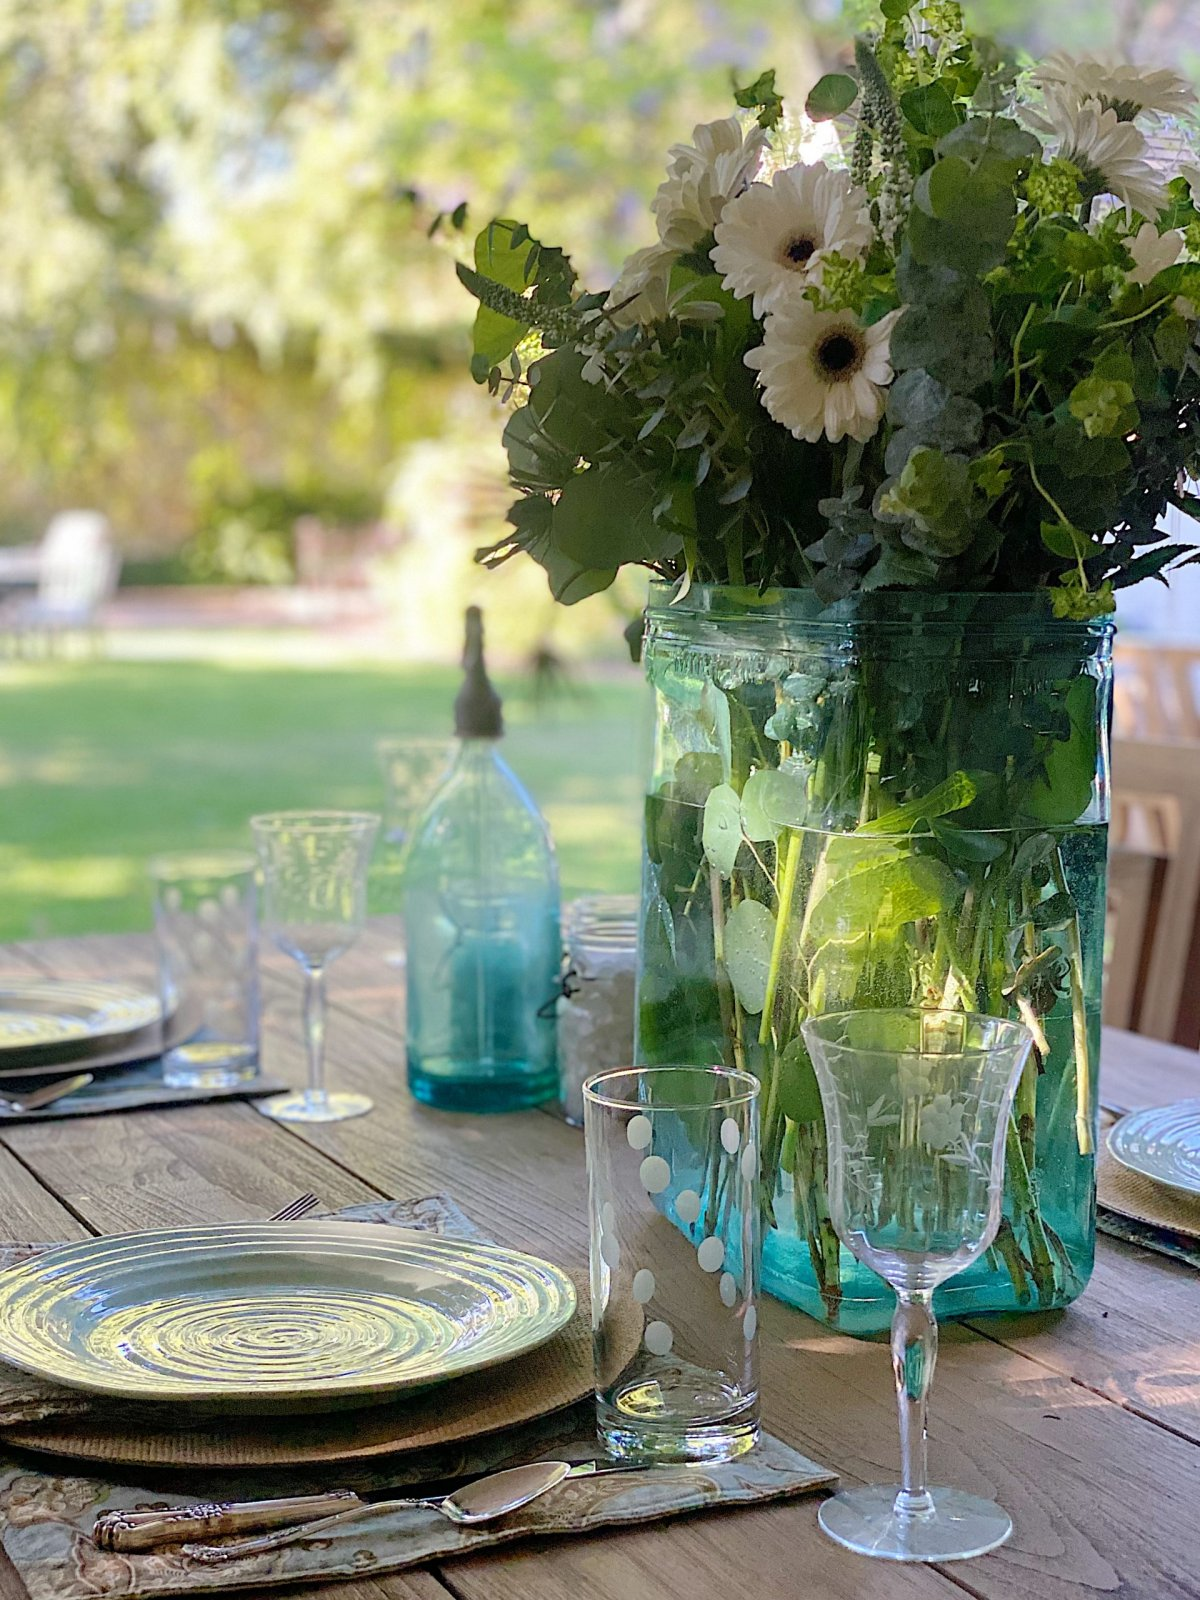 Outdoor Dining and Summer Colors